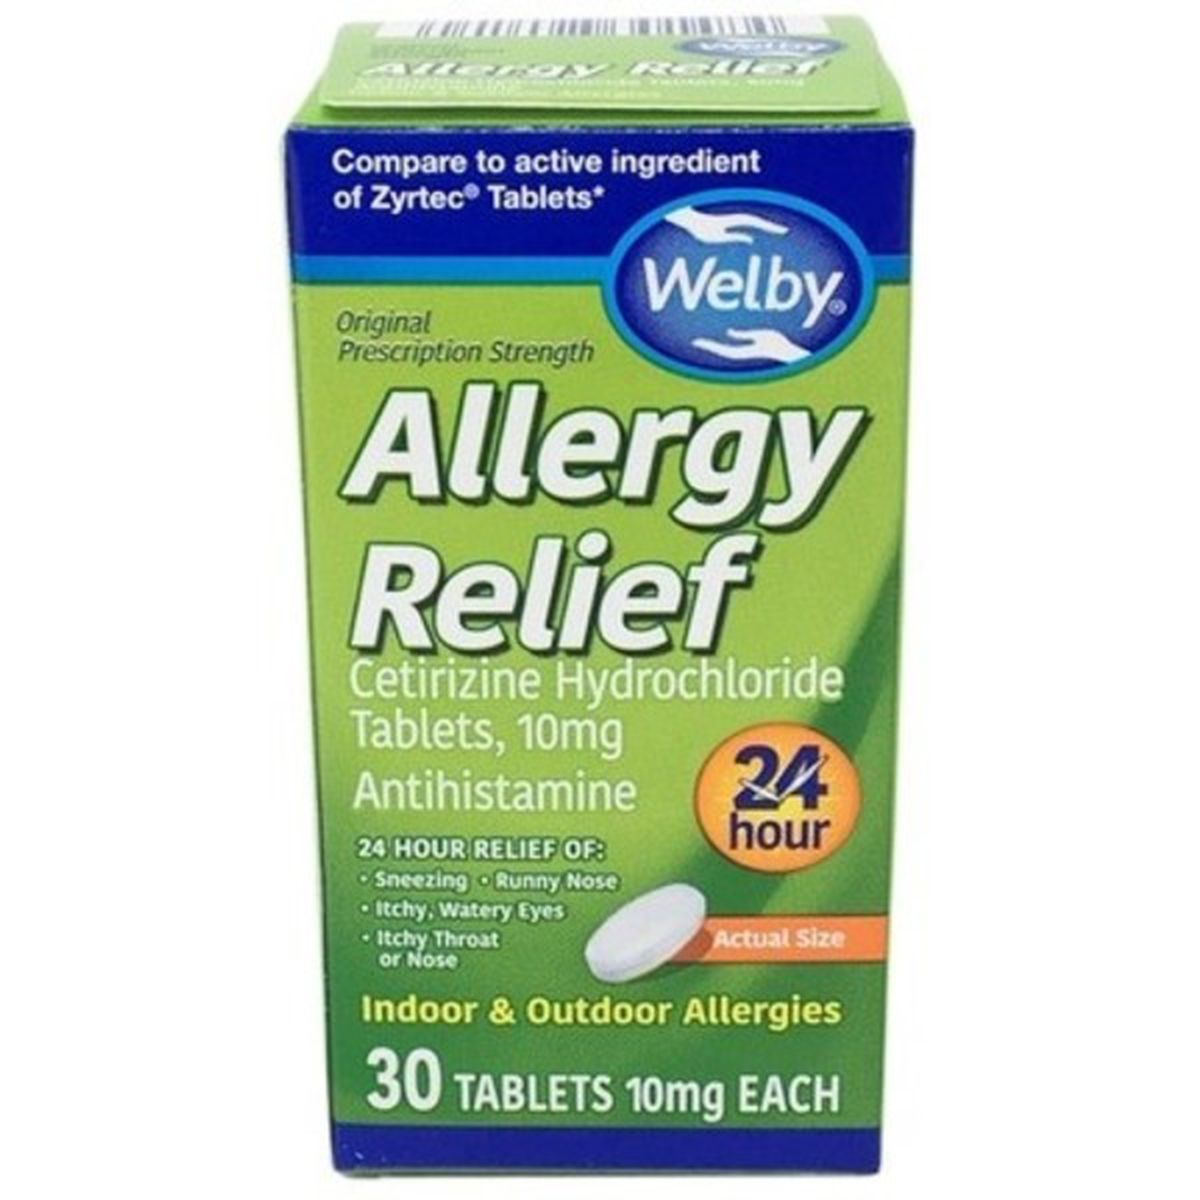 Allergy Relief, Cetirizine Hydrochloride Tables, 10 mg